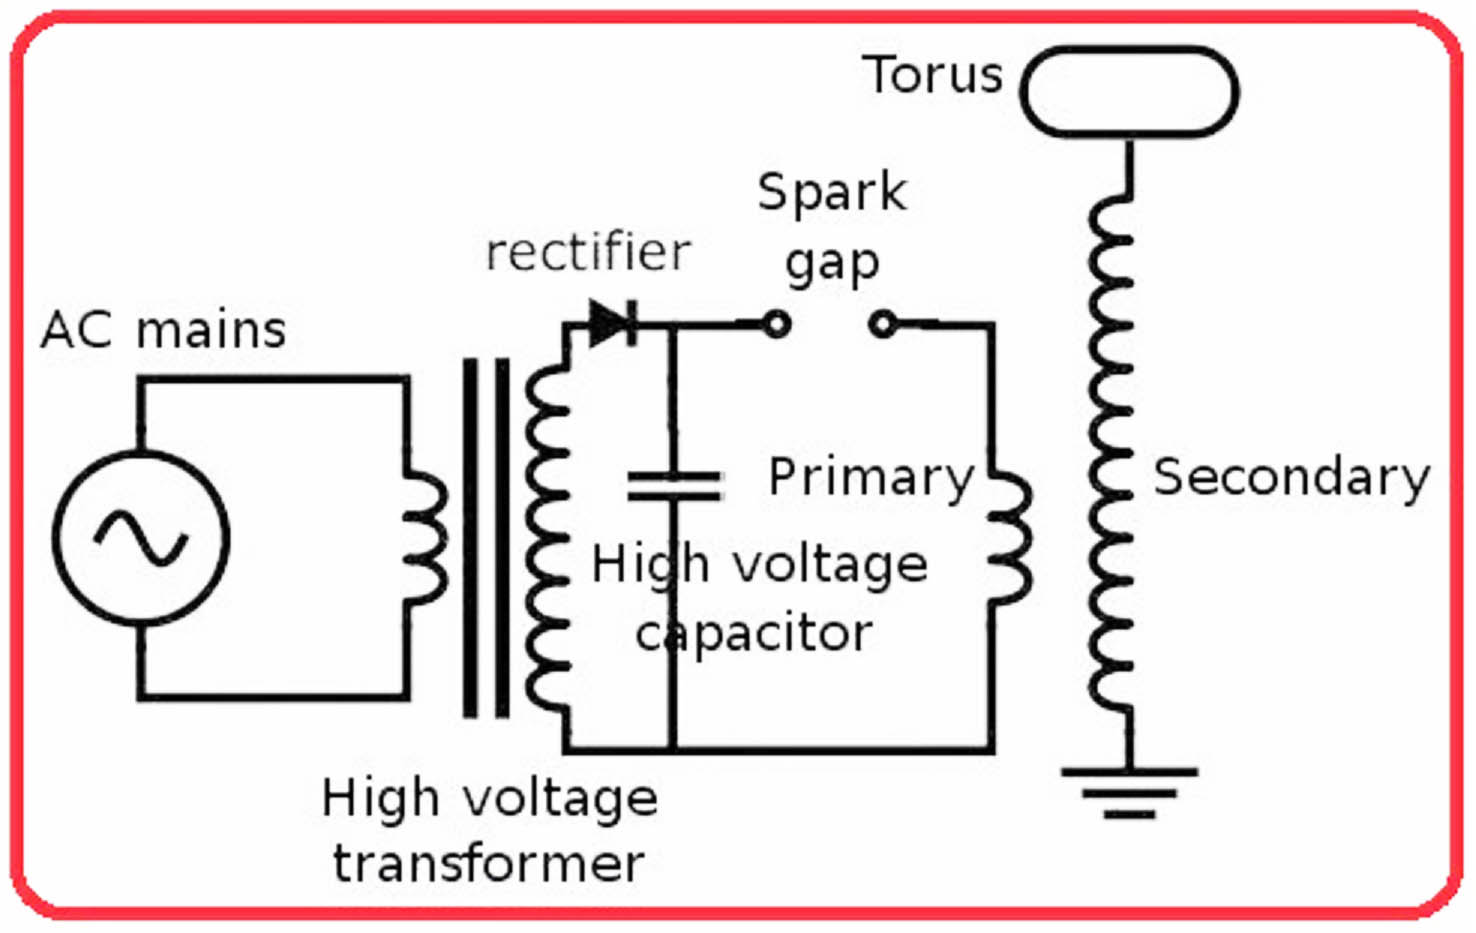 hight resolution of 6 volt coil wiring diagram for tesla wiring library 6 volt coil wiring diagram